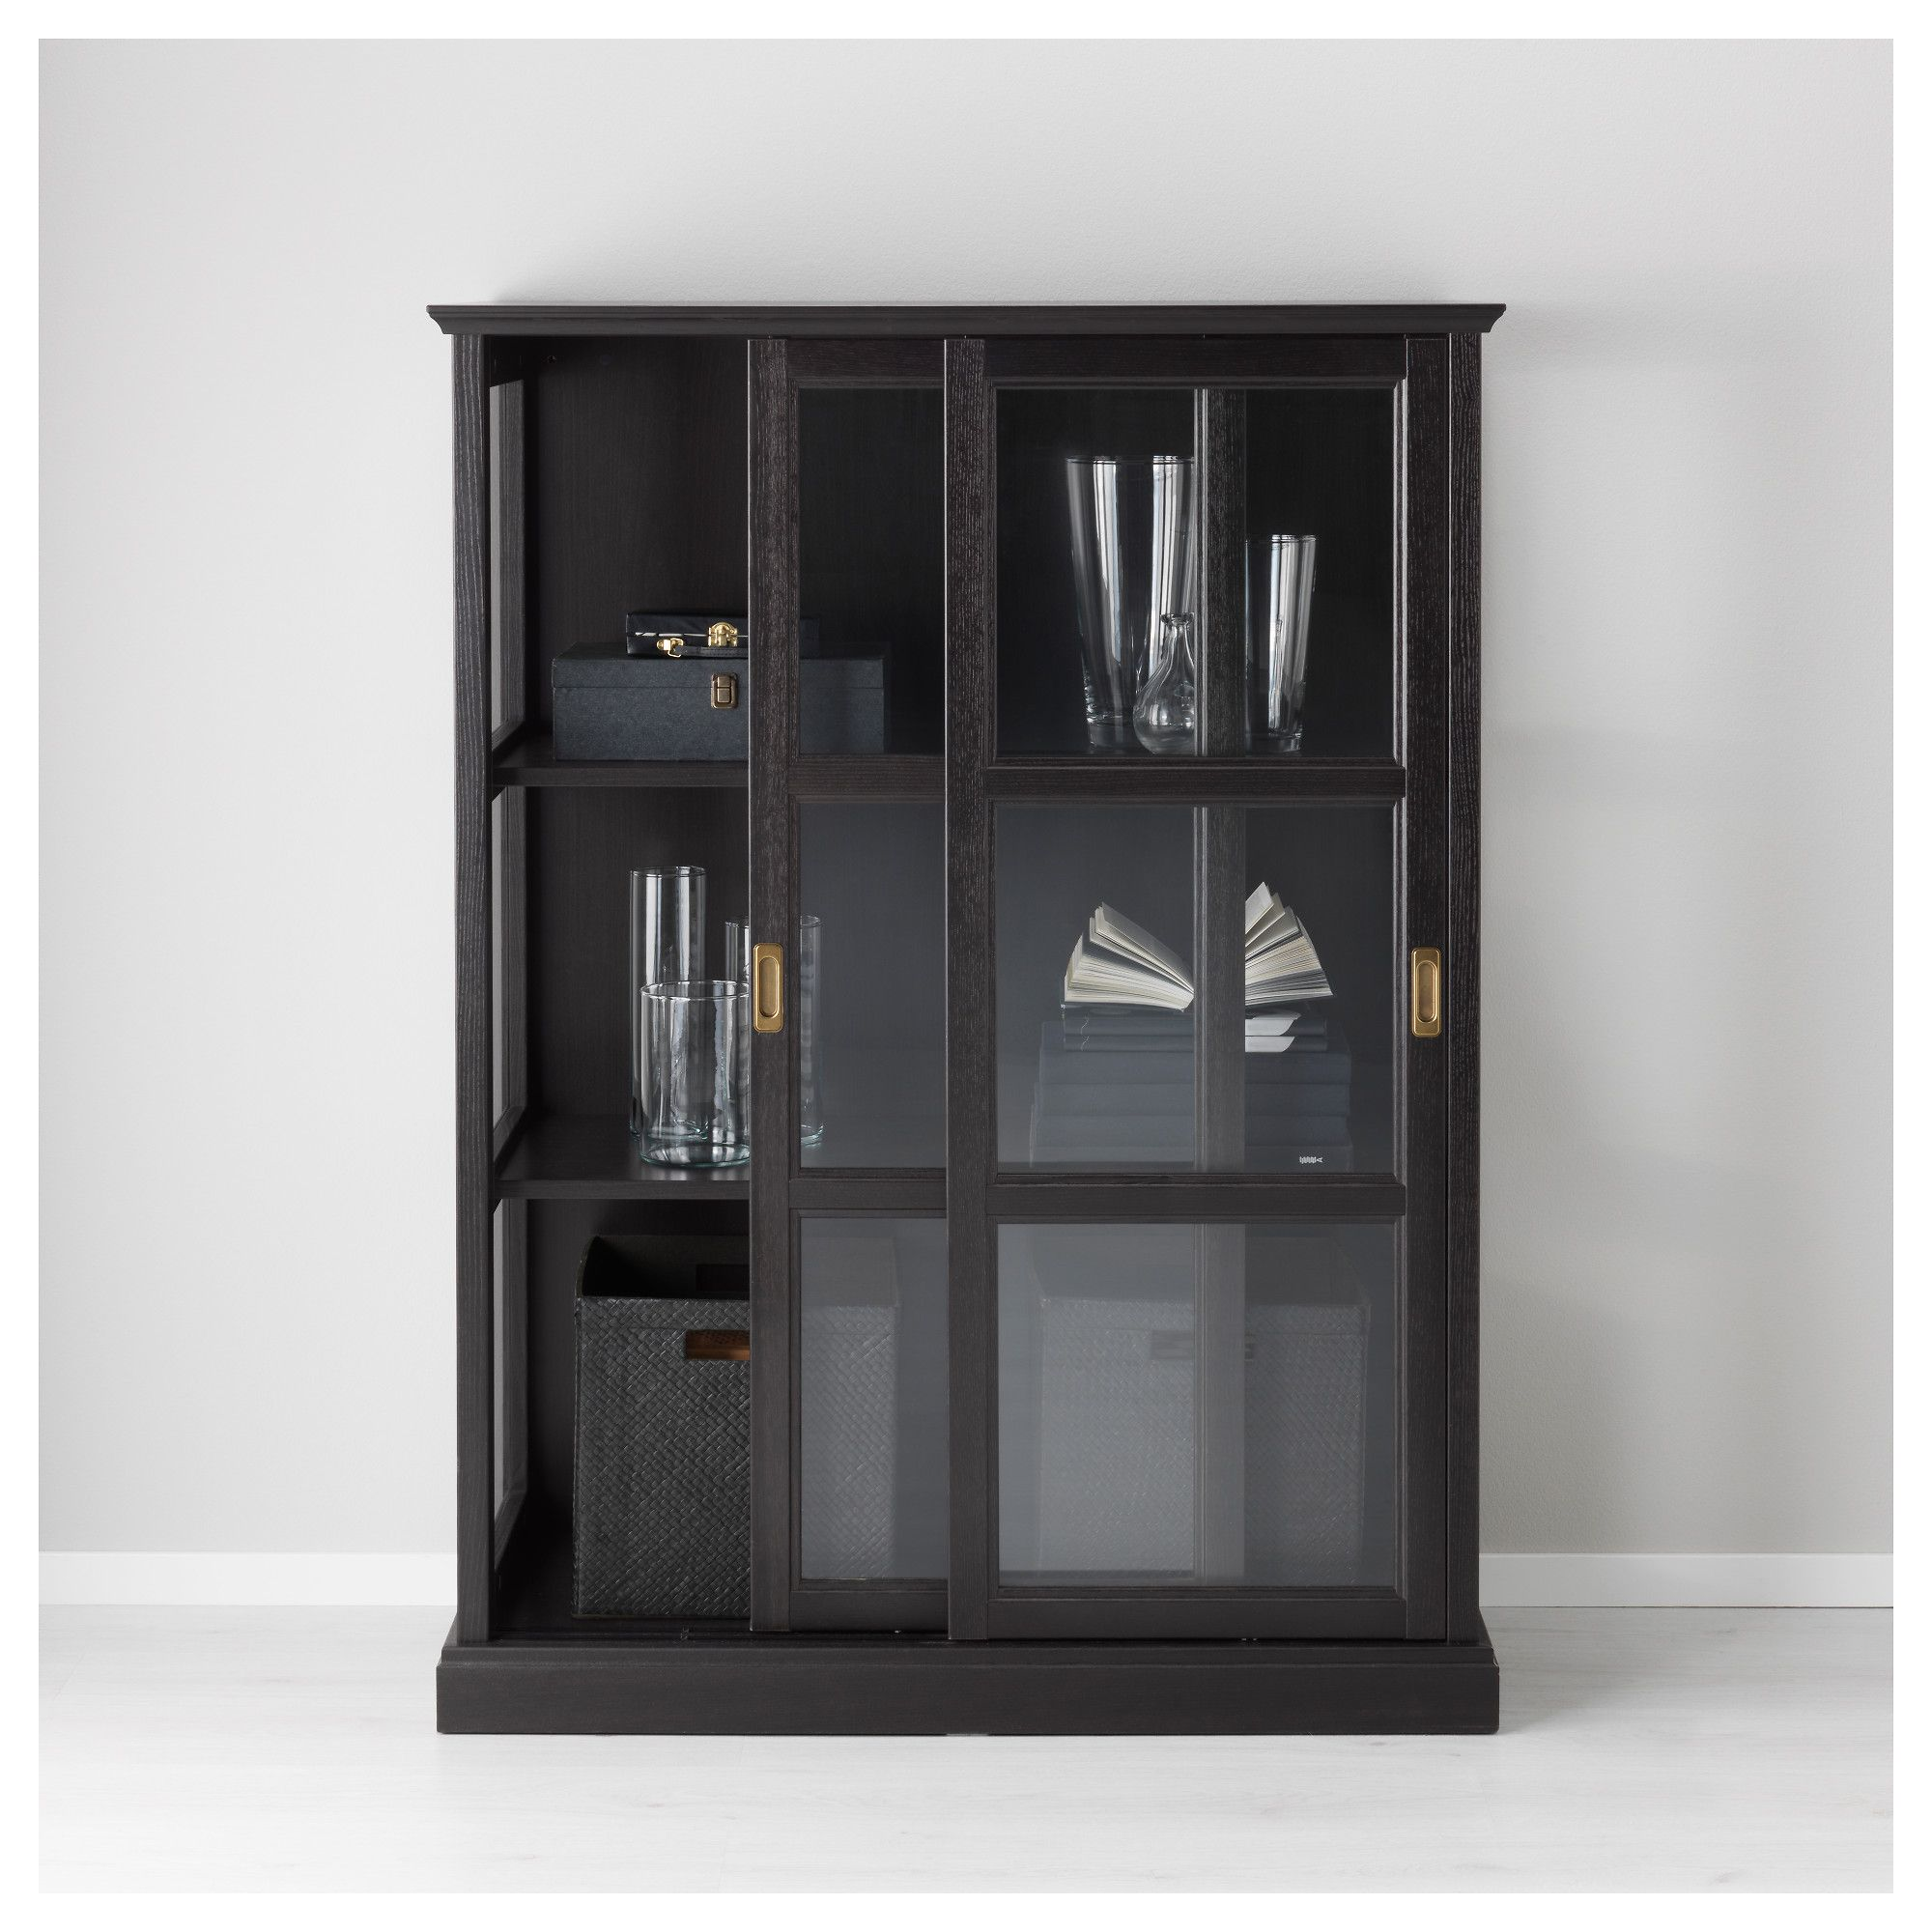 Malsj Glass Door Cabinet Black Stained 103x141 Cm Glass Doors